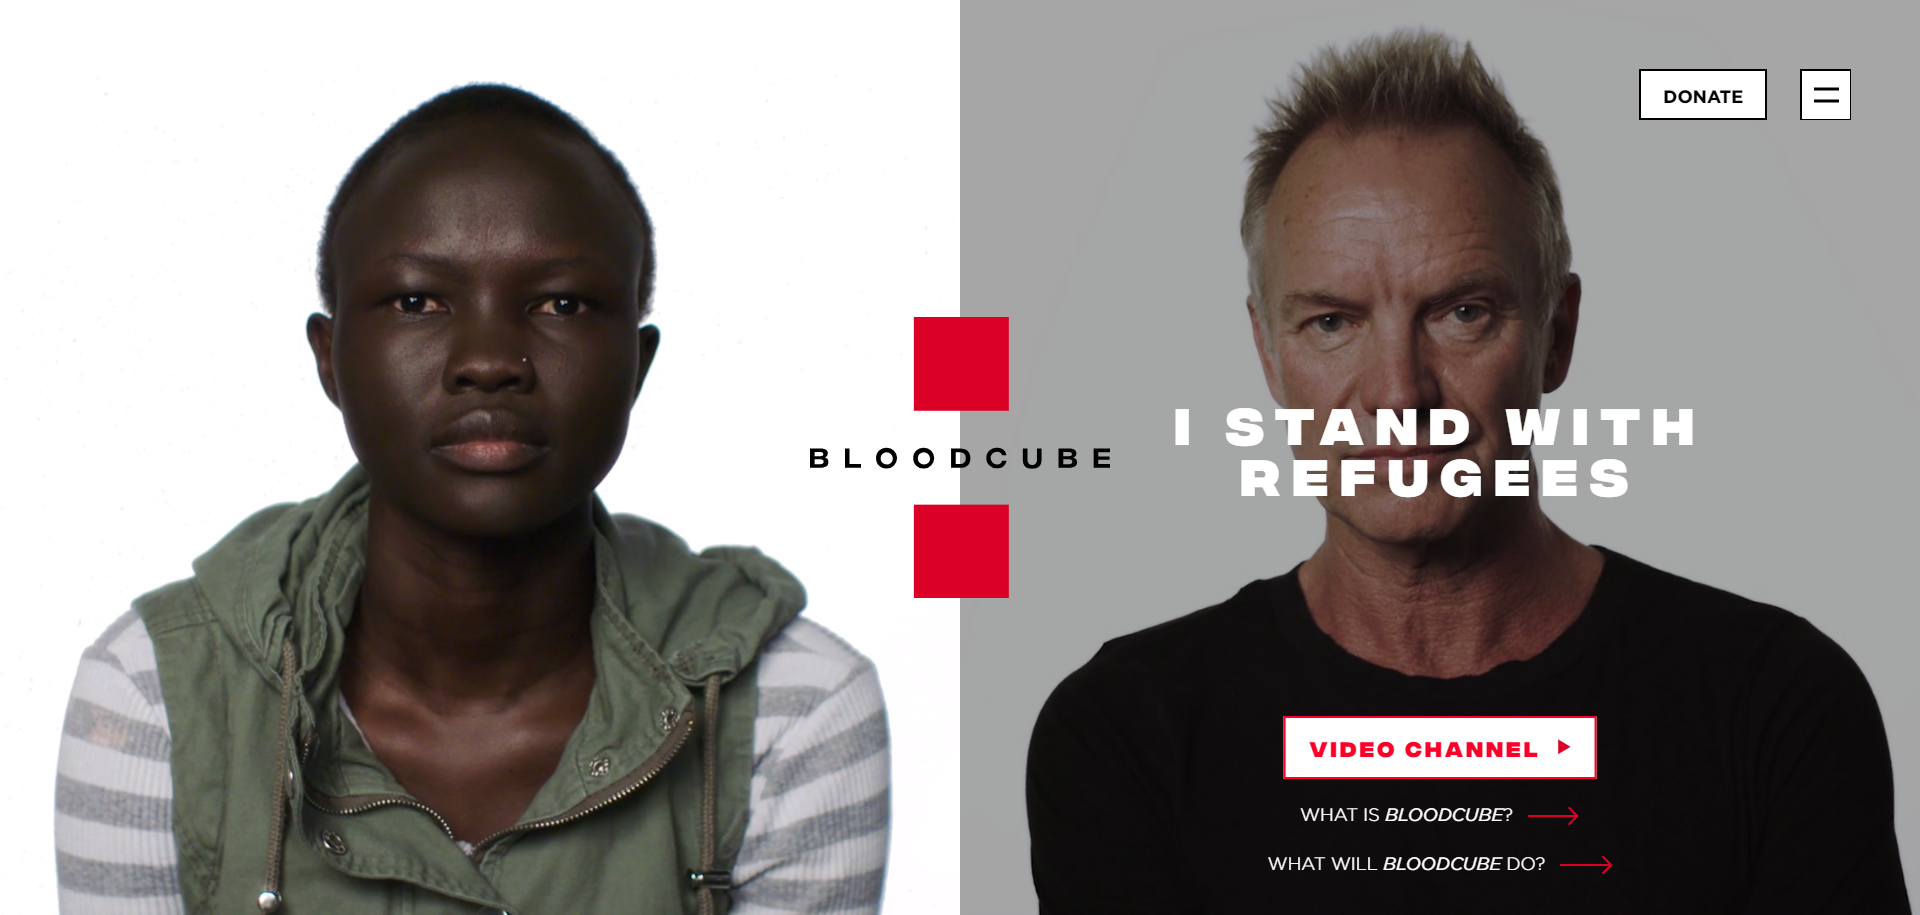 Bloodcube charity visibility project